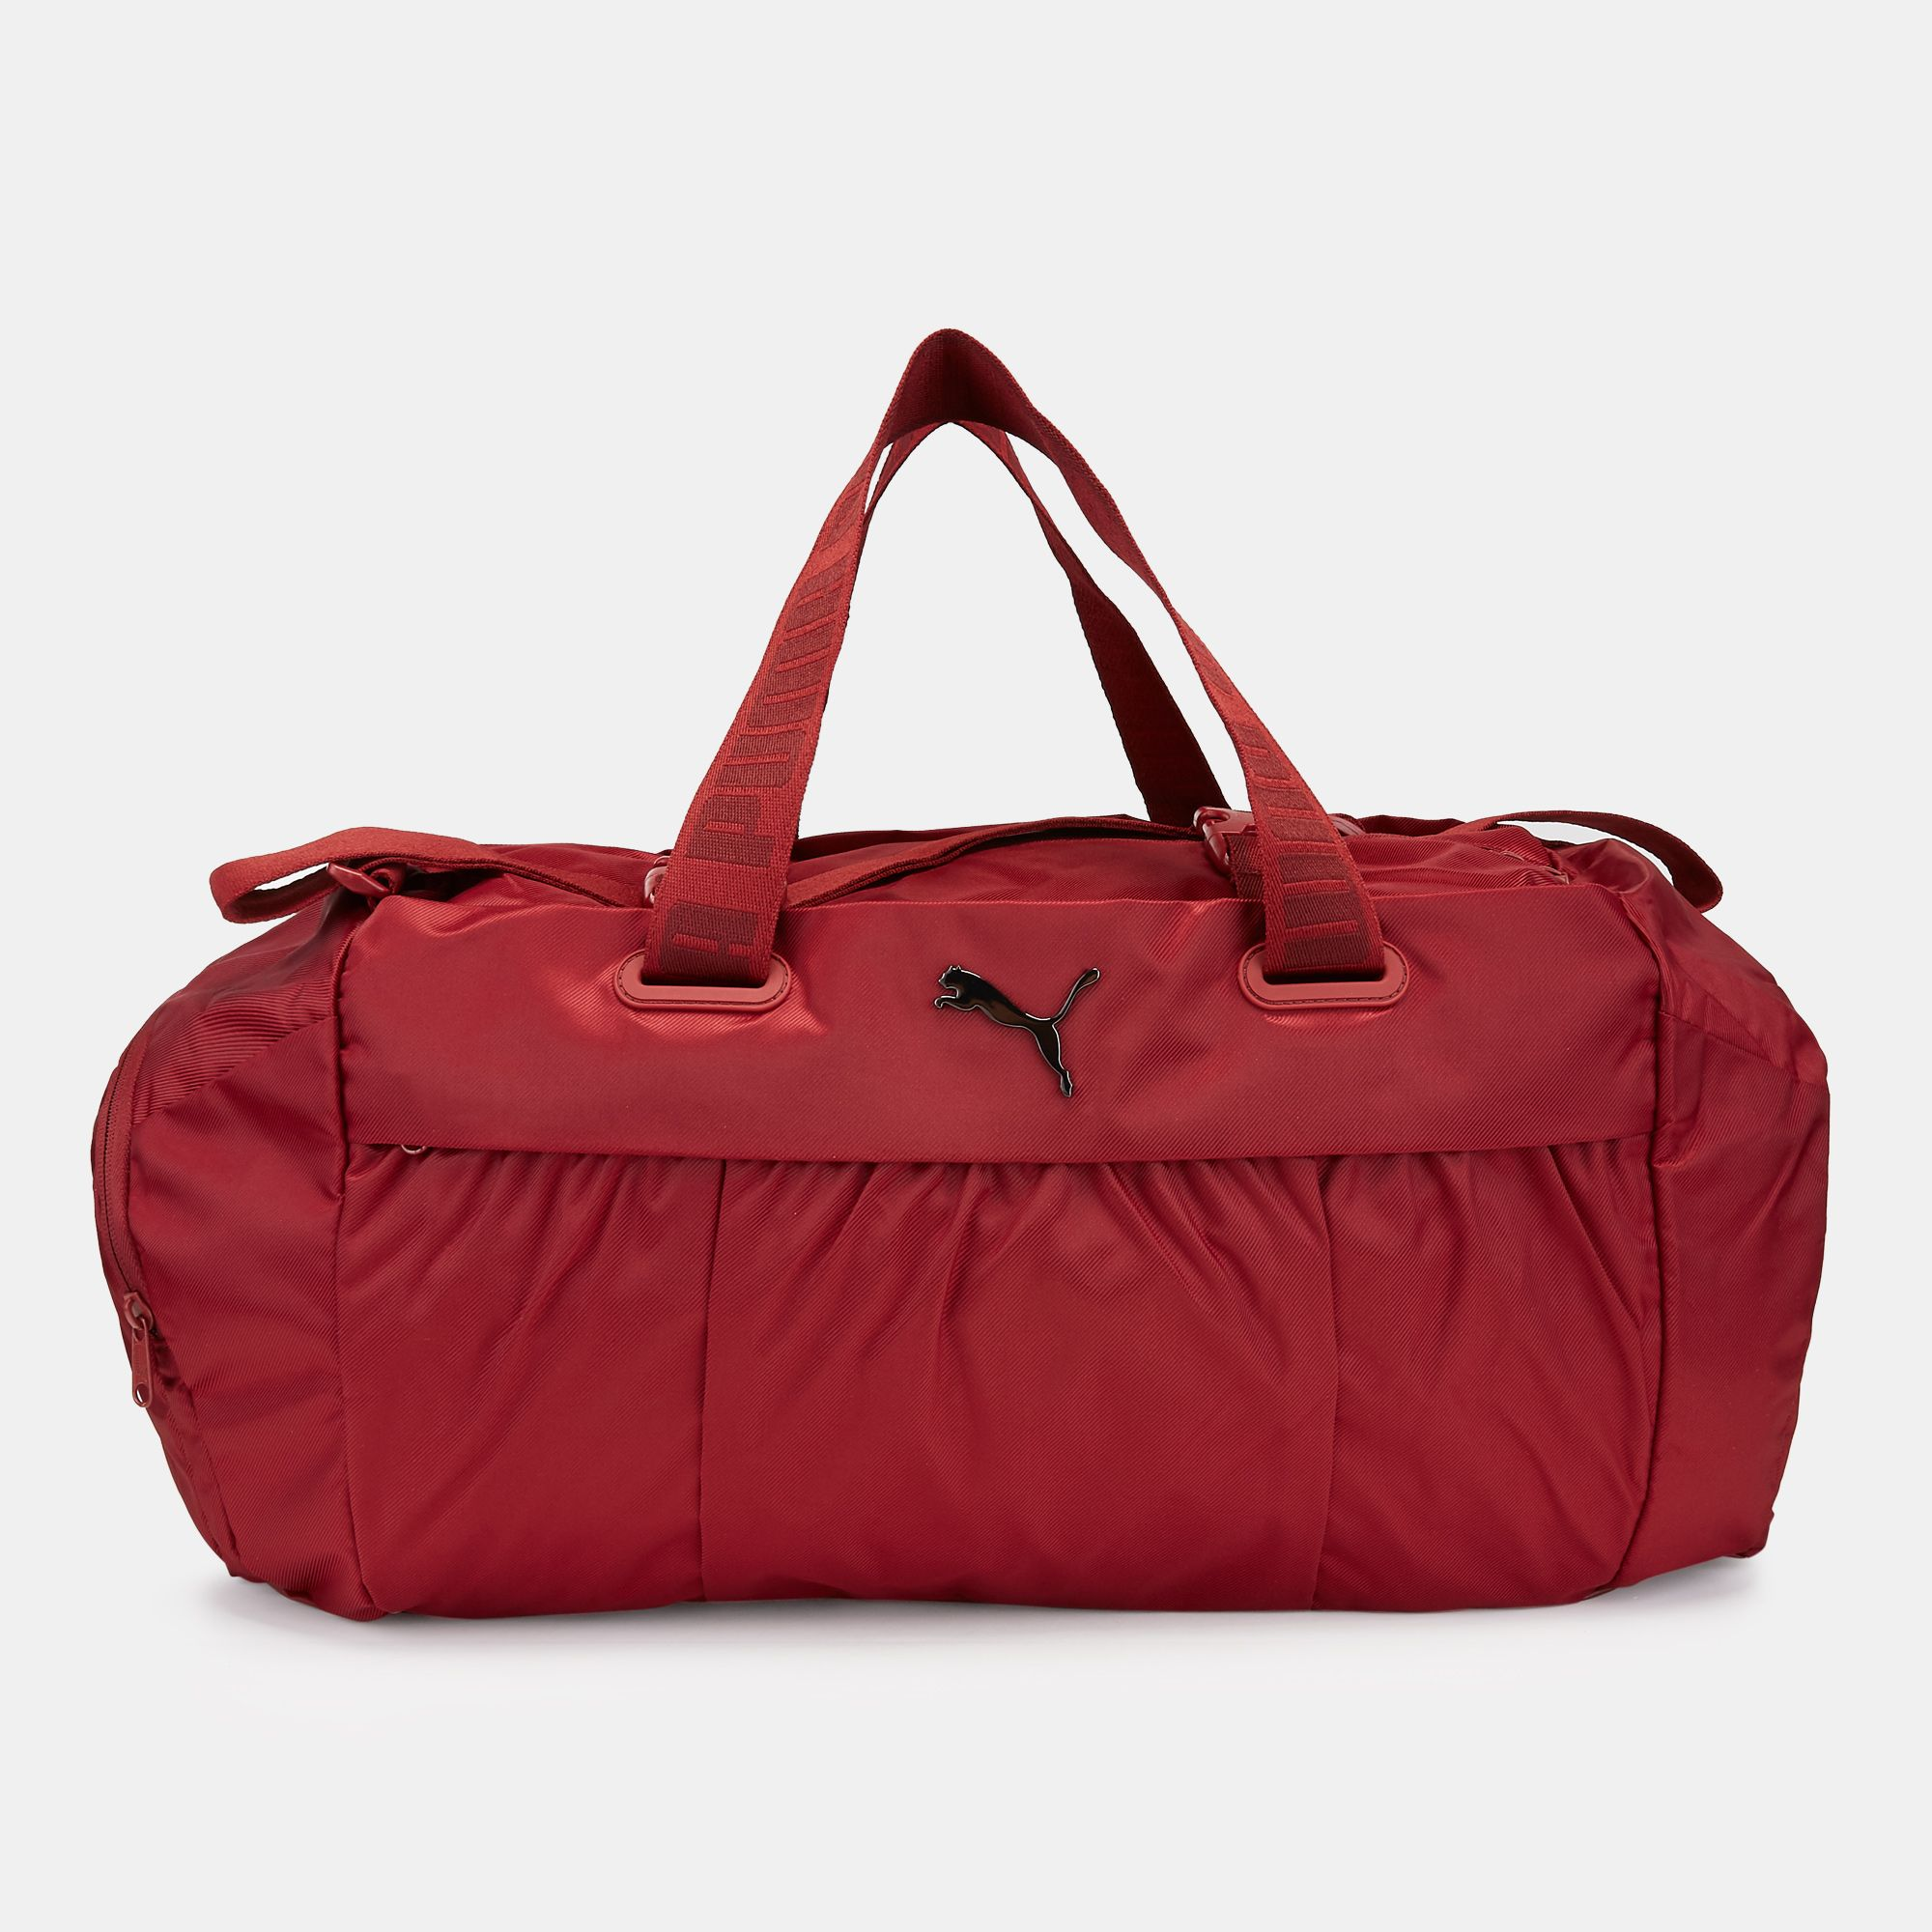 4b1385bdb9f3 PUMA AT Sports Duffle Bag - Multi